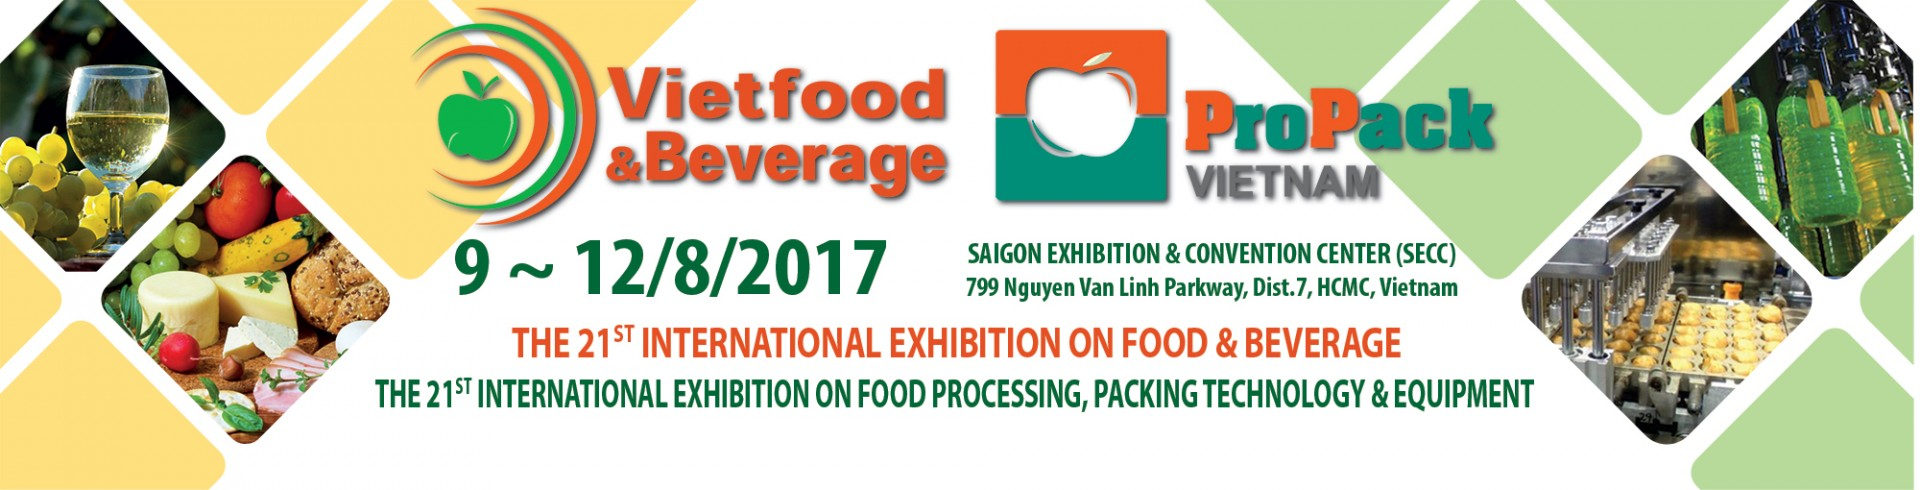 VIETFOOD & BEVERAGE - PROPACK 2017